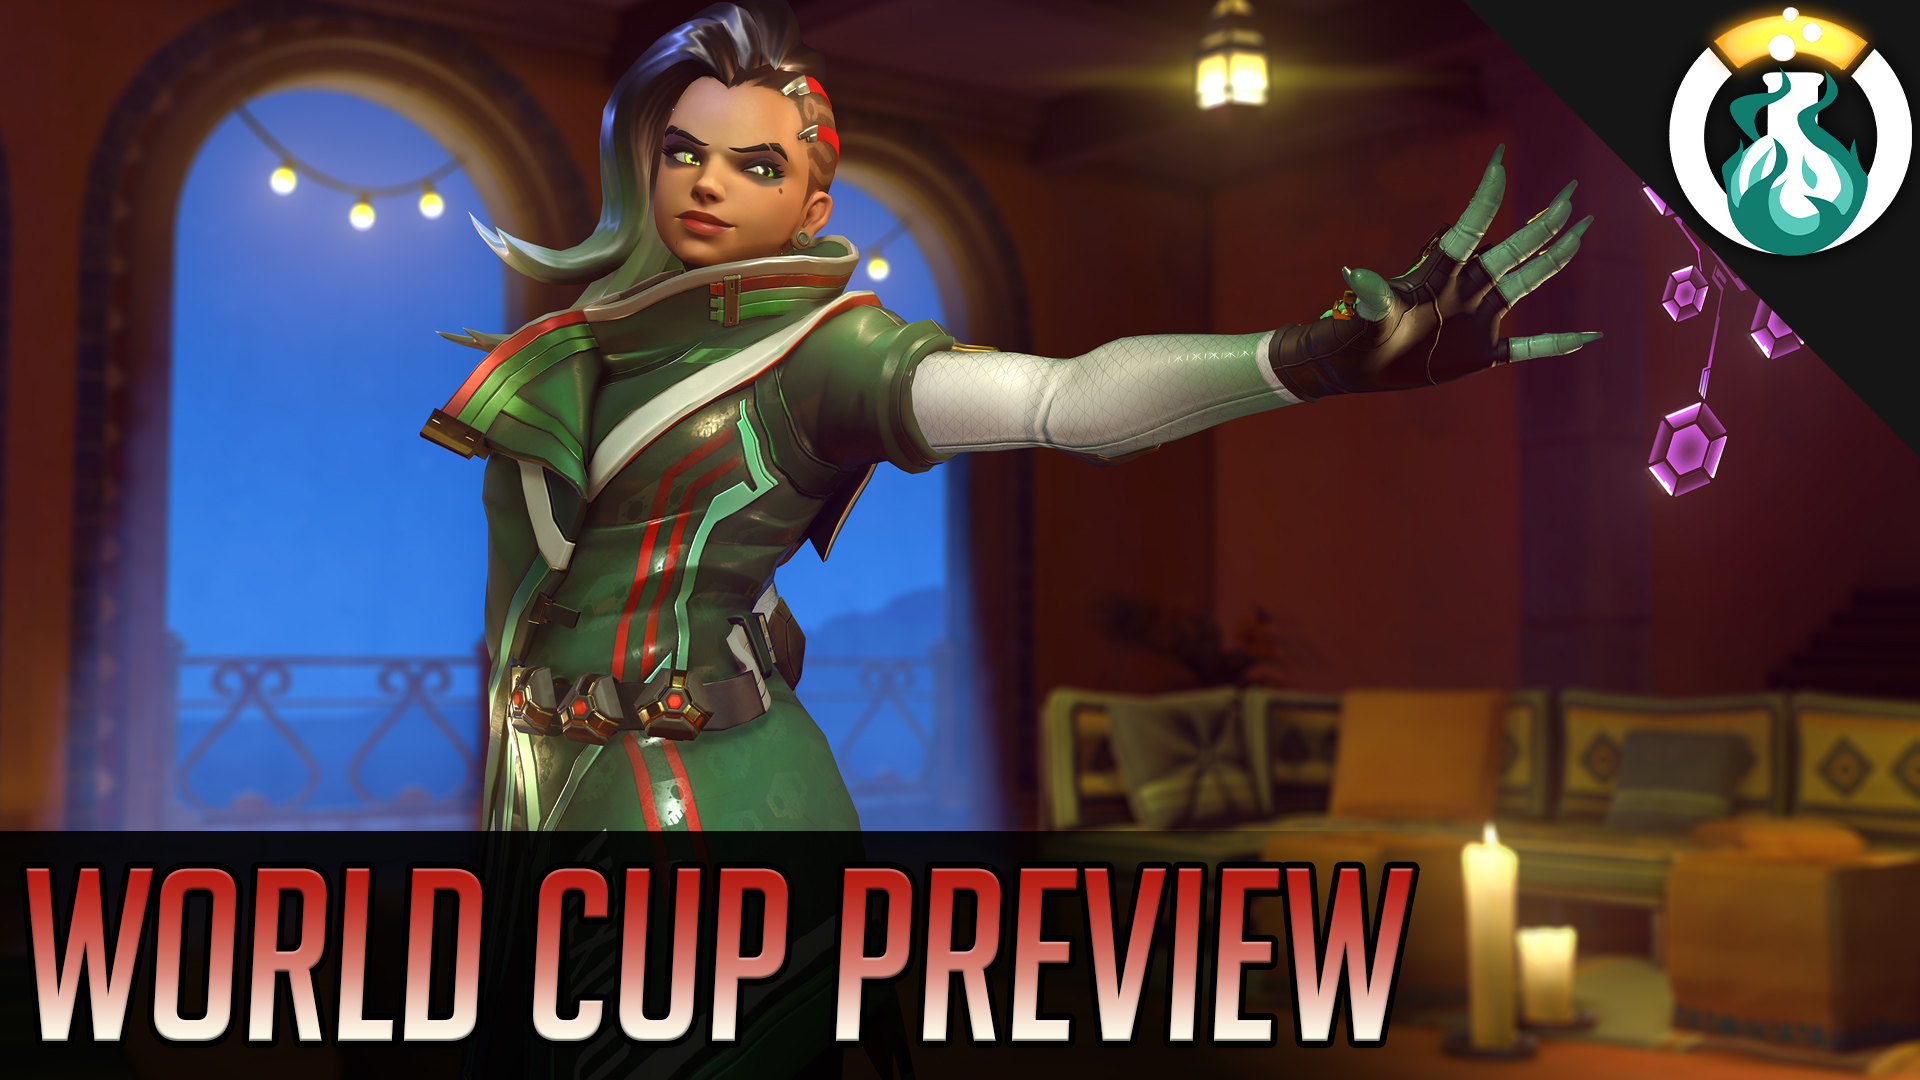 Omnic-Lab-YouTube-Card-117-world-cup-preview.jpg